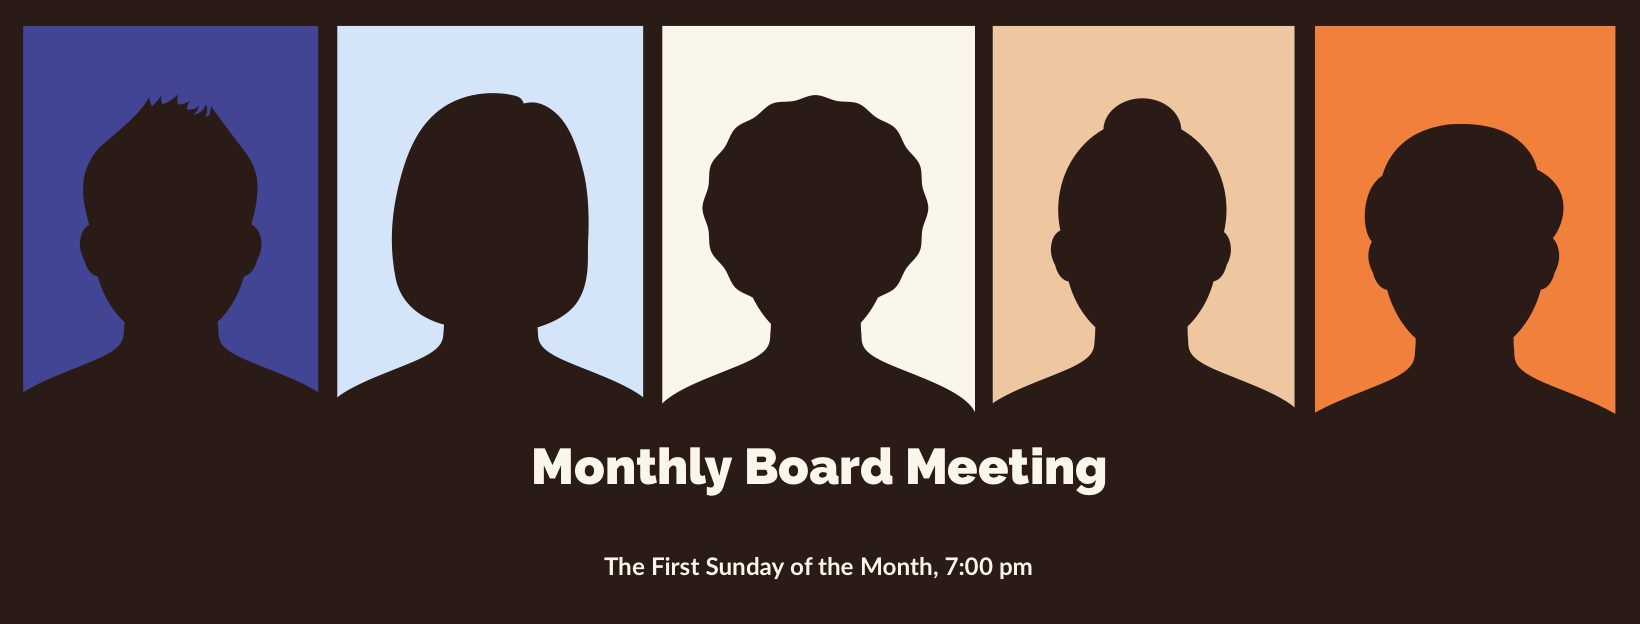 CPT Board Monthly Meetings, First Sunday of the Month, 7am